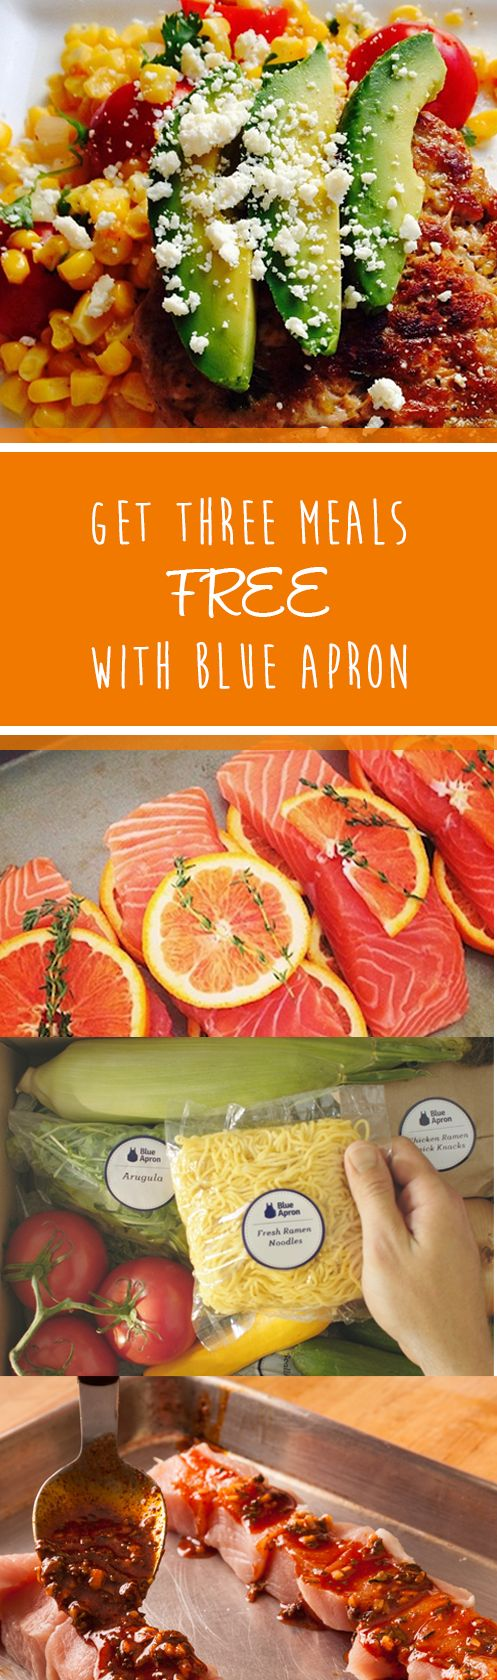 Blue apron yucca